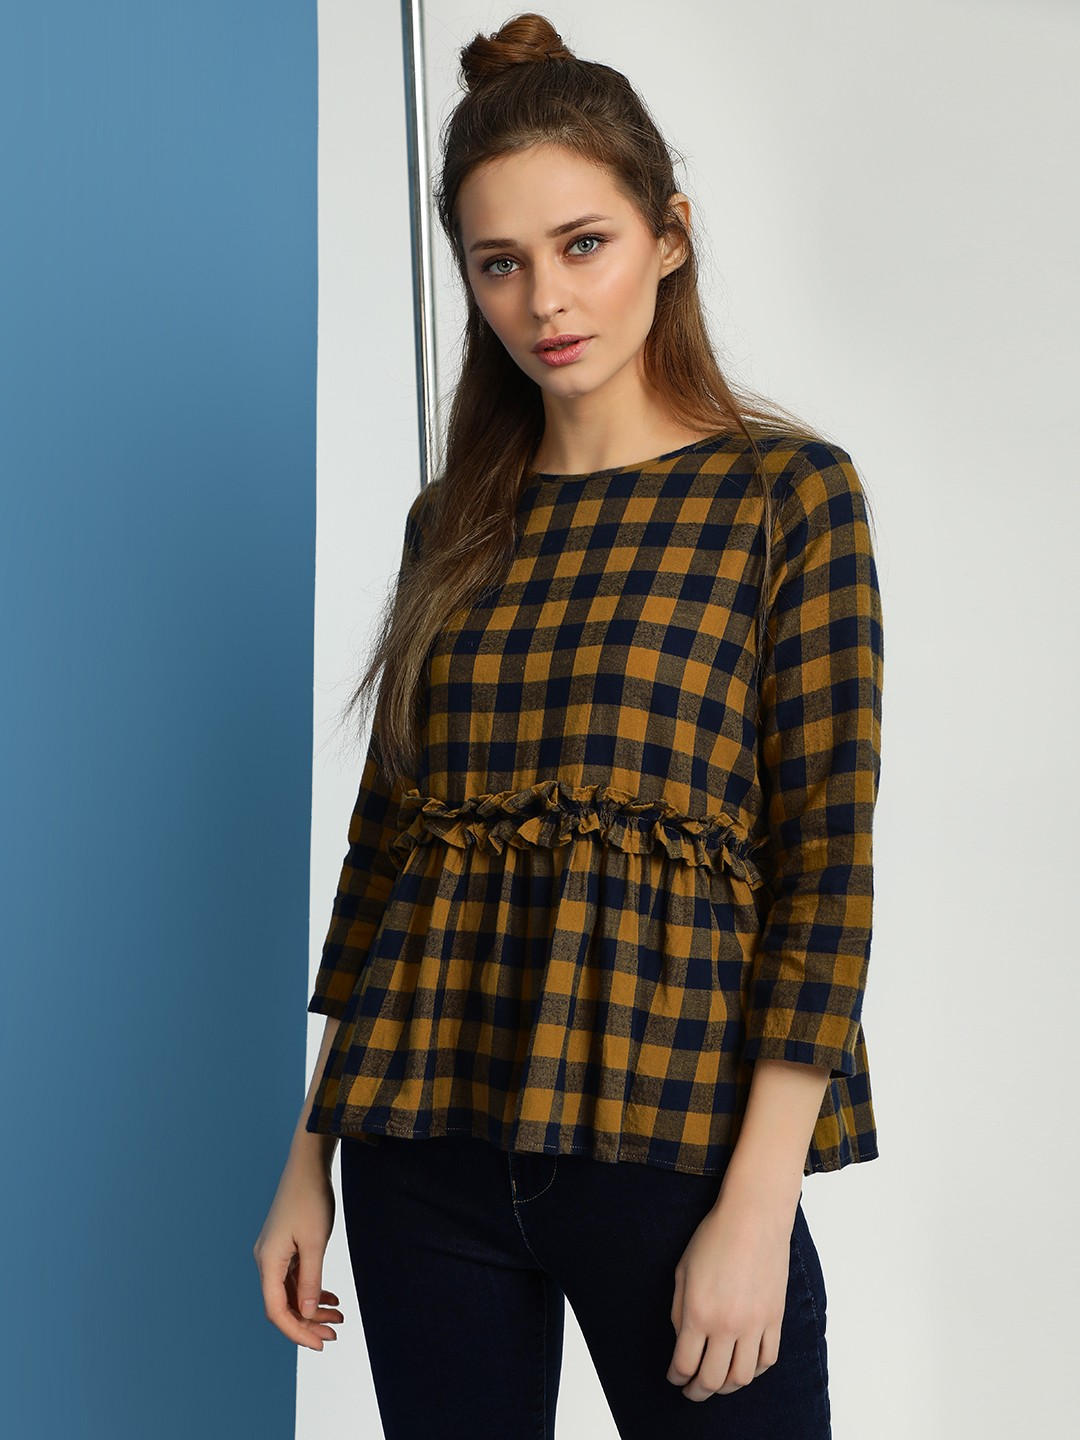 Evah London Multi Check Smocked Peplum Top 1